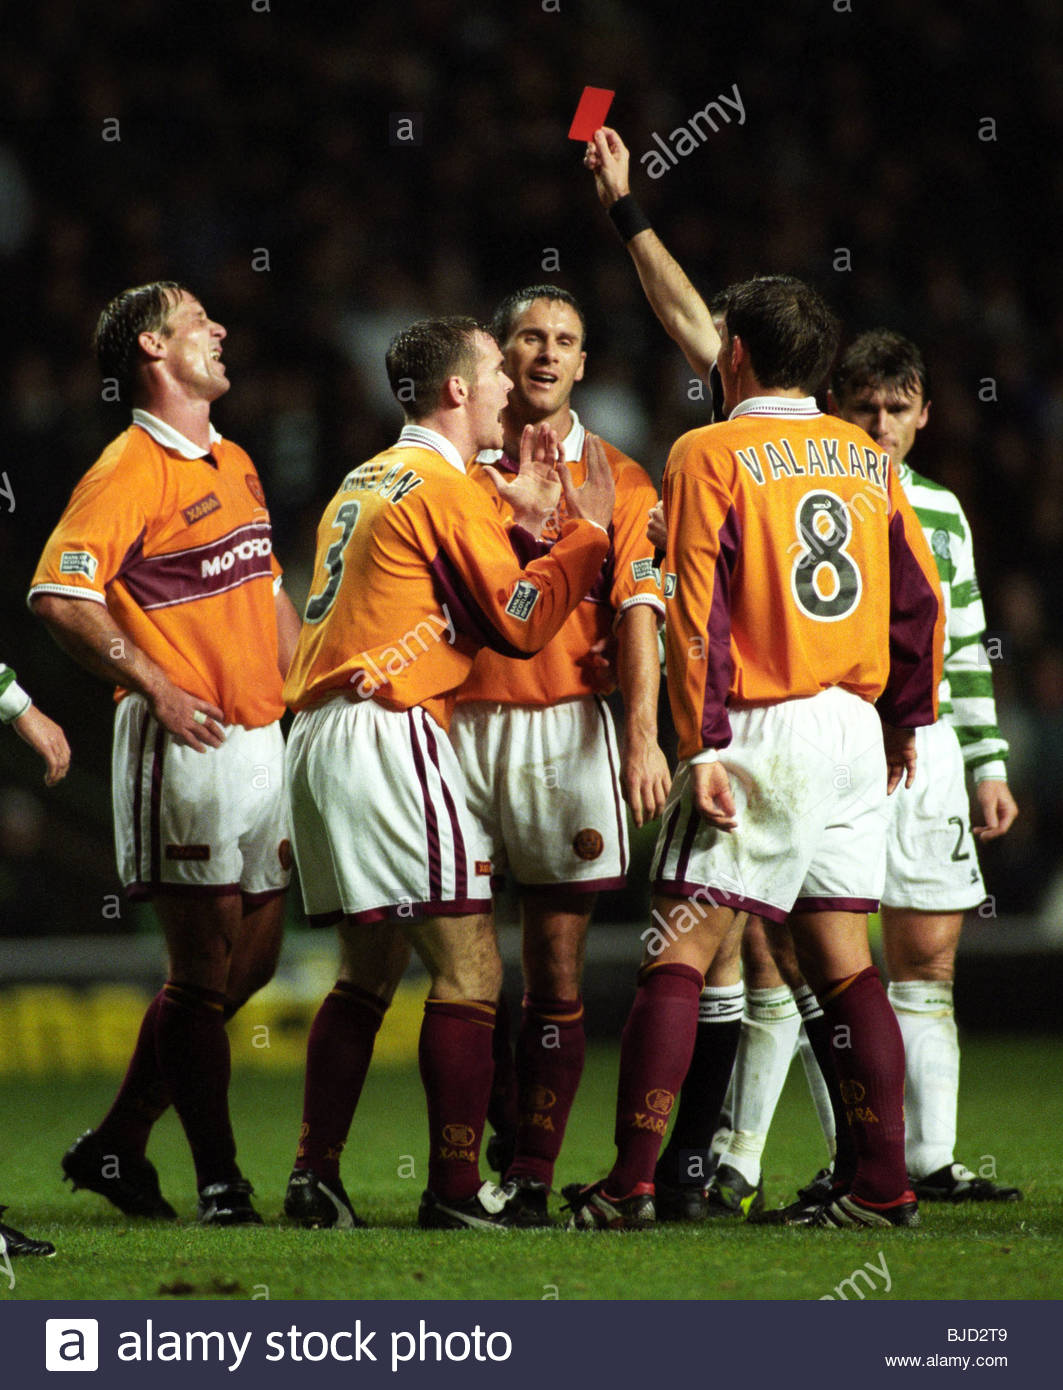 27/10/99 SPL CELTIC V MOTHERWELL (0-1) CELTIC PARK - GLASGOW The Motherwell players plead their case as Shaun Teale - Stock Image